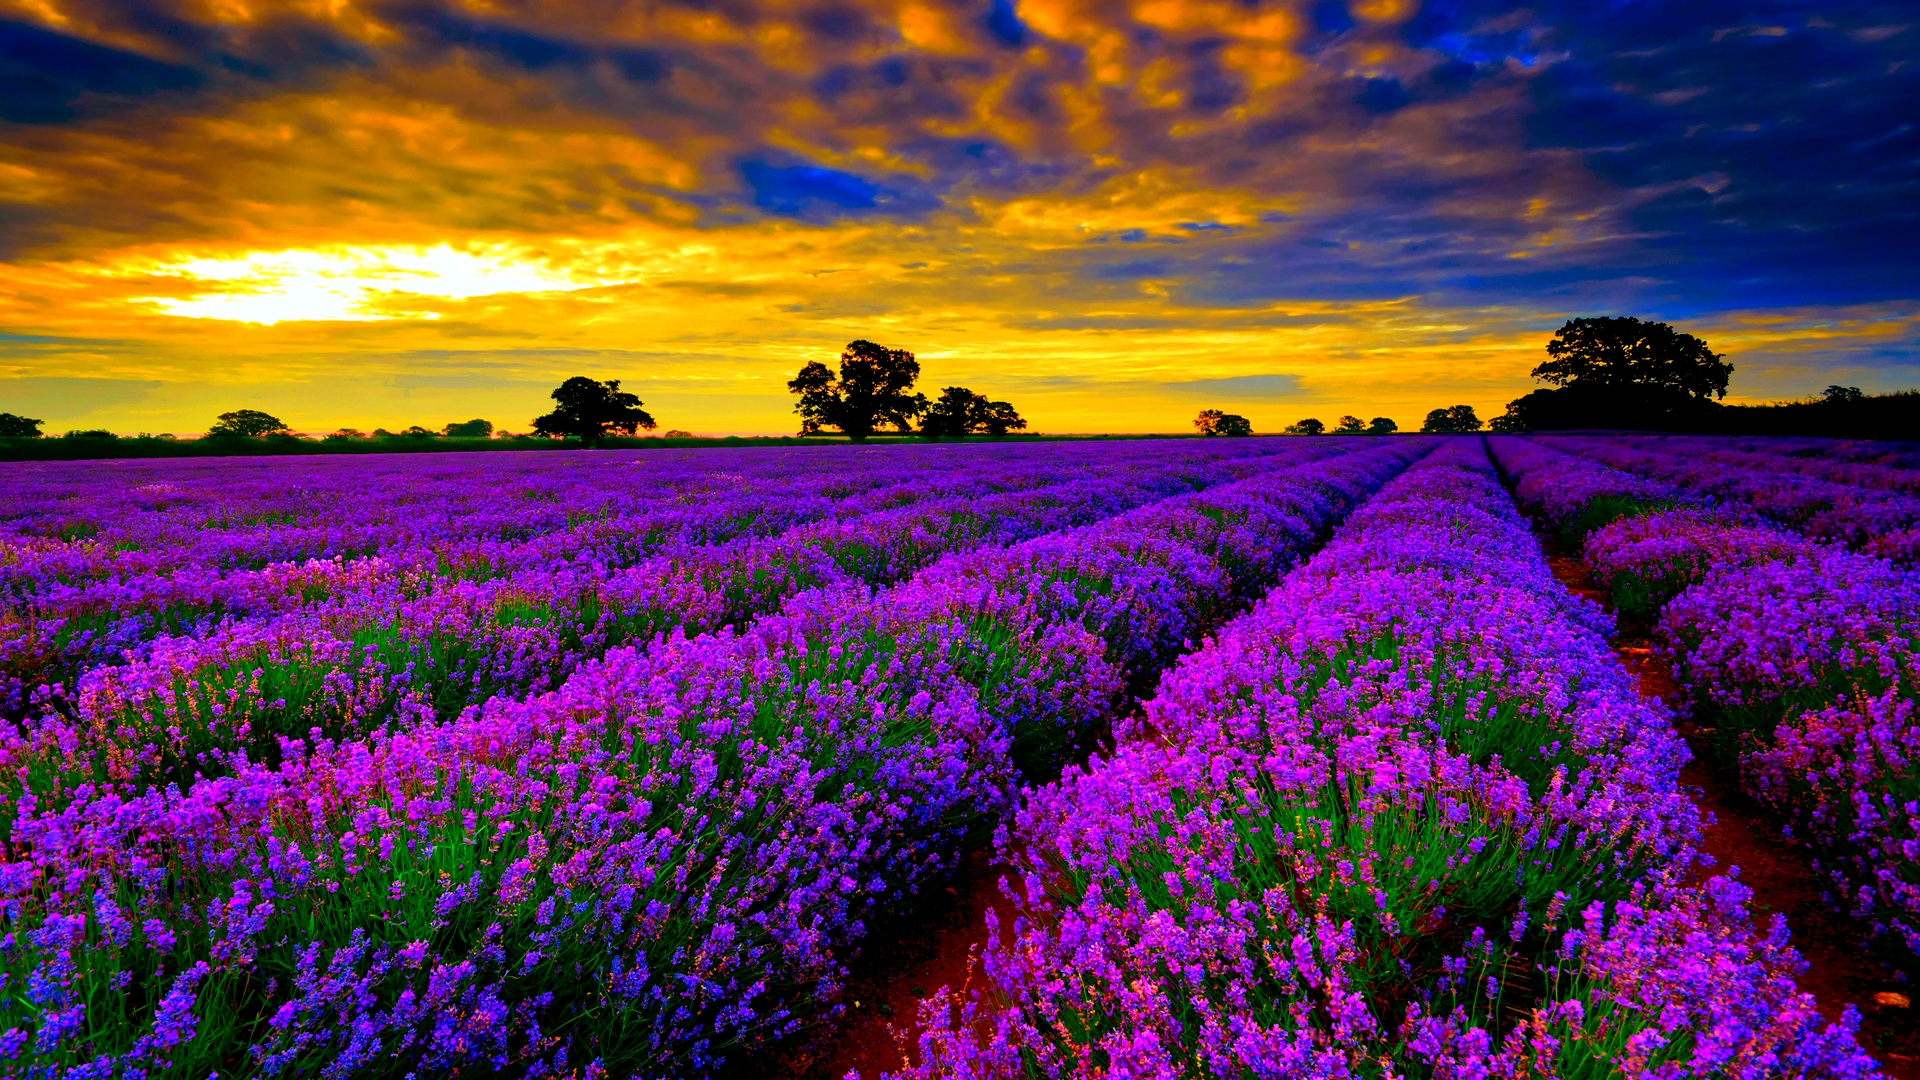 Dramatic Lavender Farm Wallpaper HD 9877 Wallpaper Wallpaper Screen 1920x1080